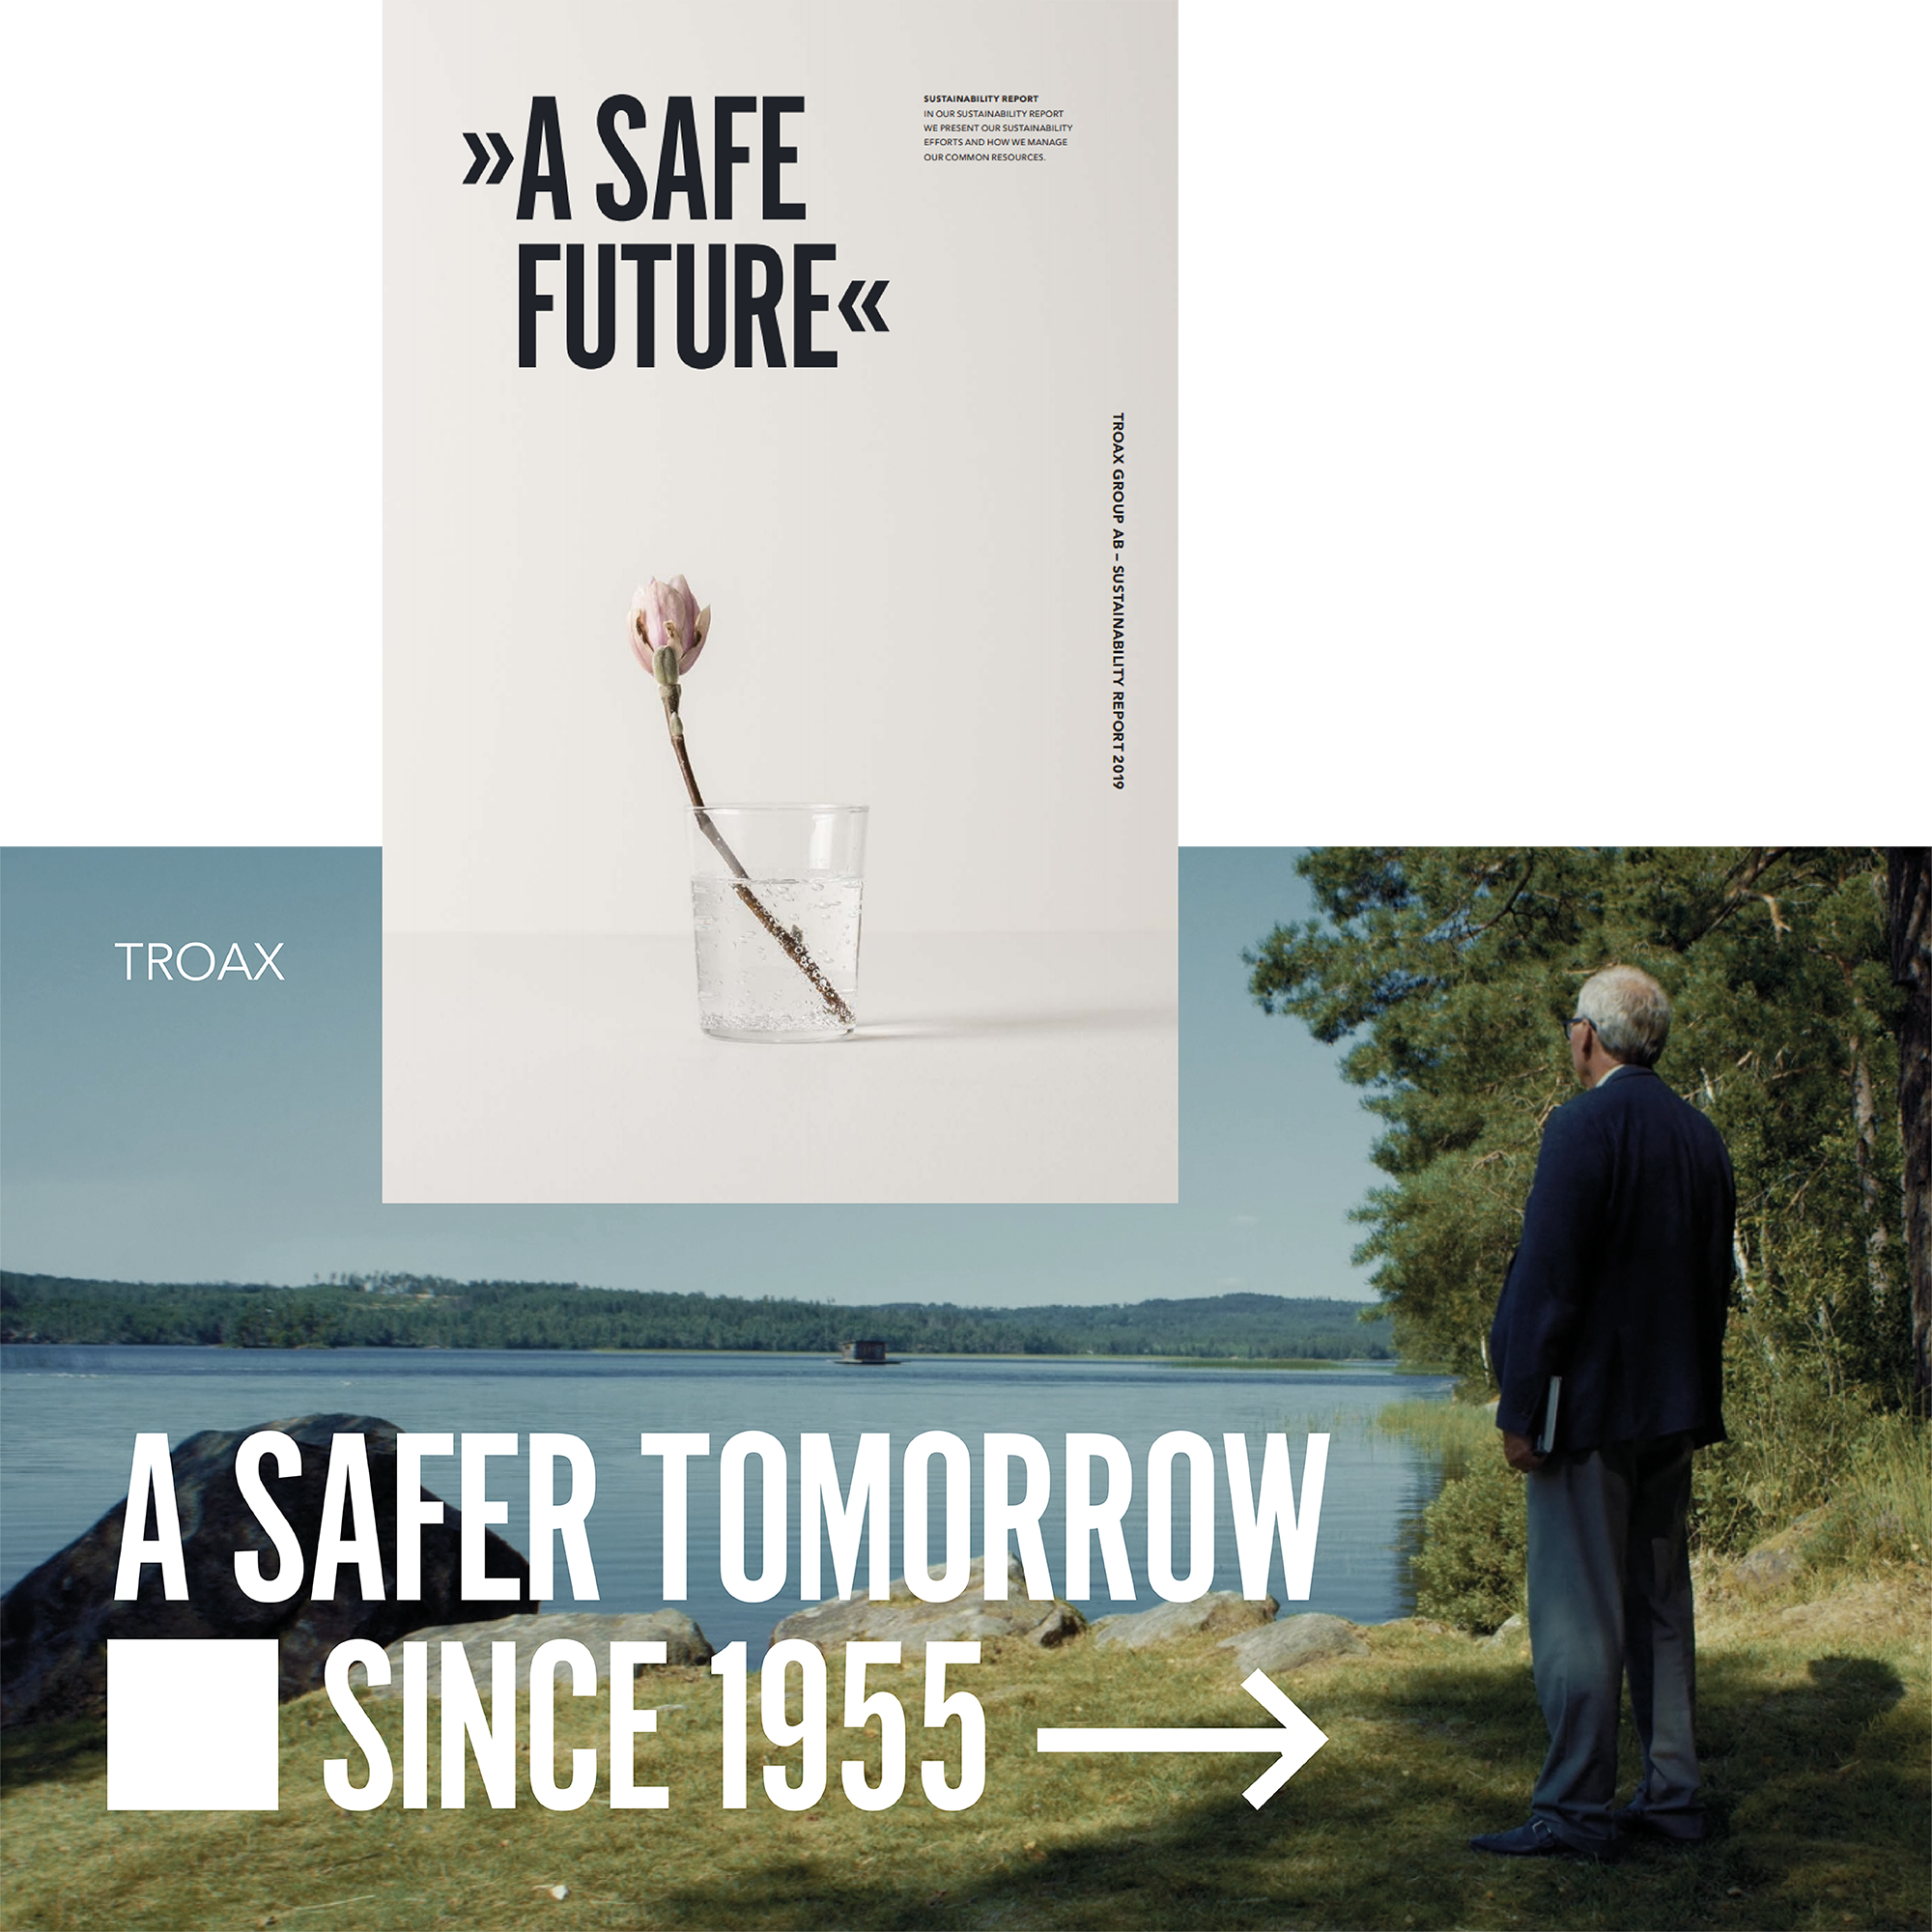 Sustainability Report & For A Safer Tomorrow video